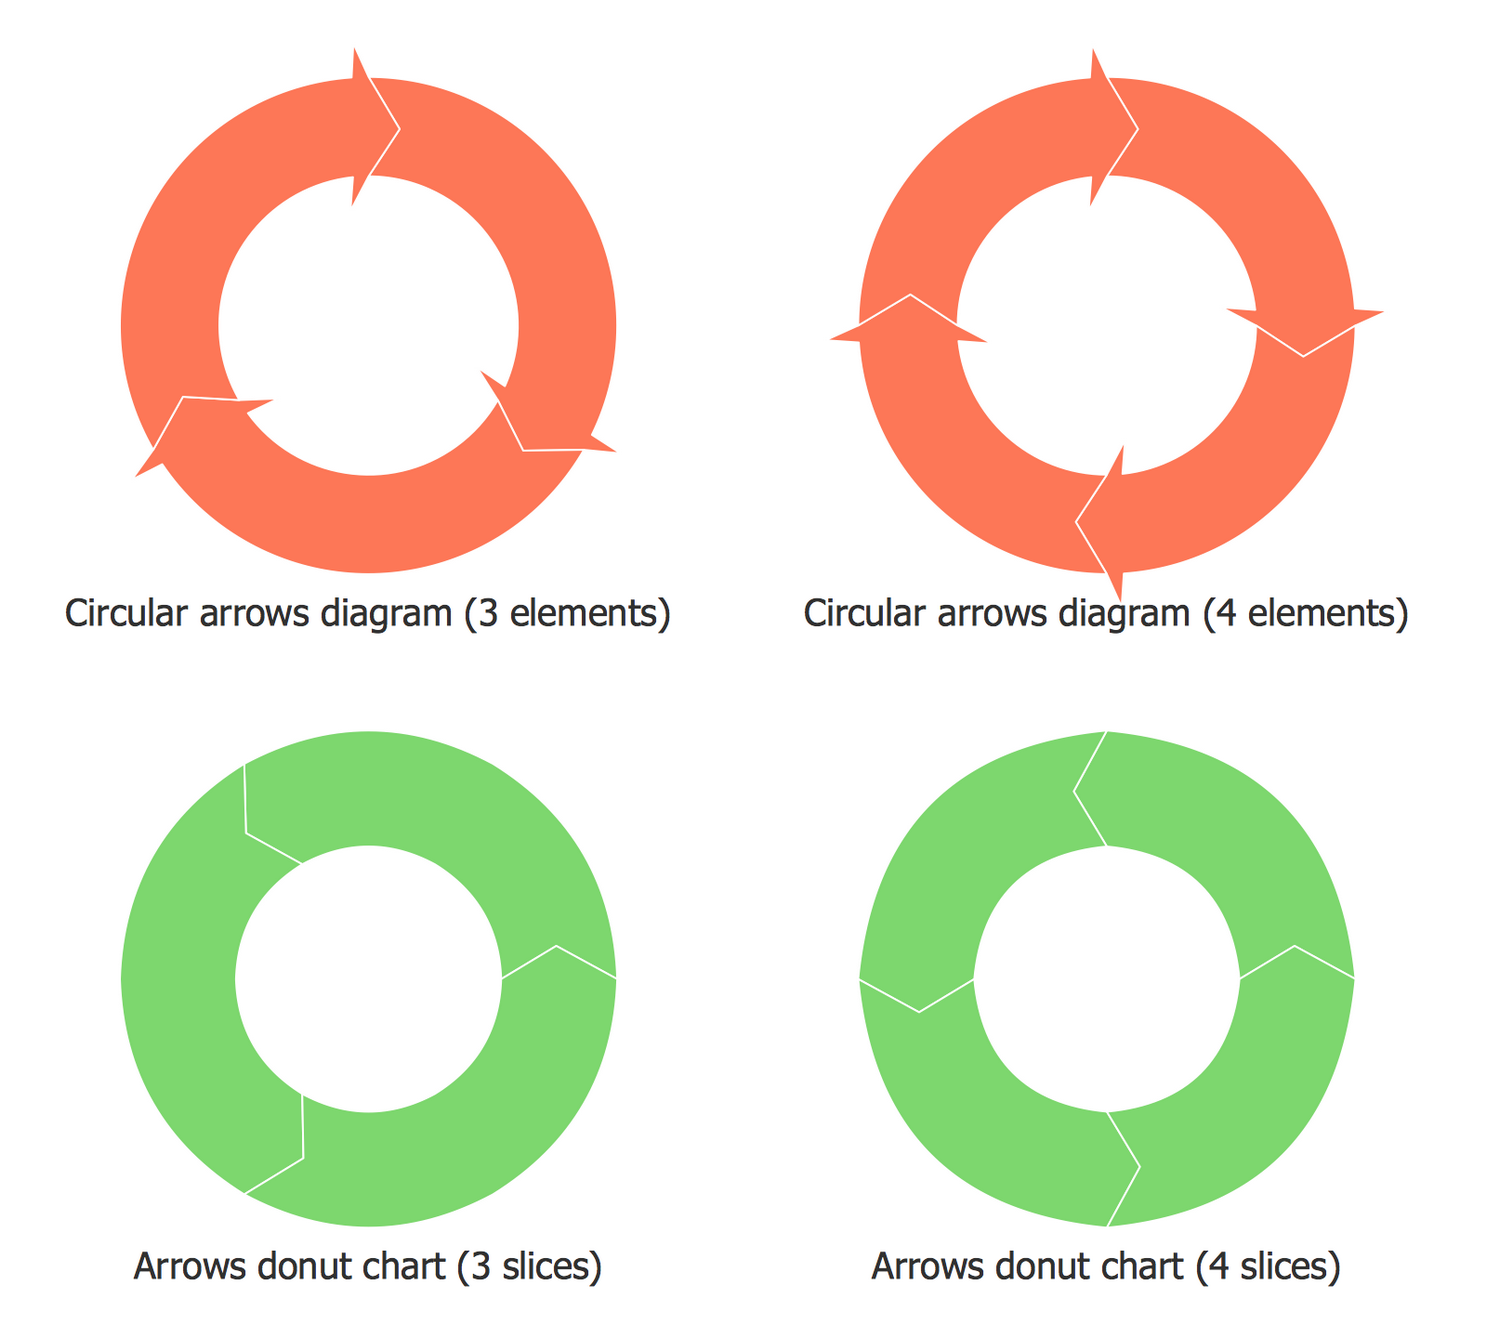 Basic circular arrows diagrams solution conceptdraw design elements basic circular arrows diagrams ccuart